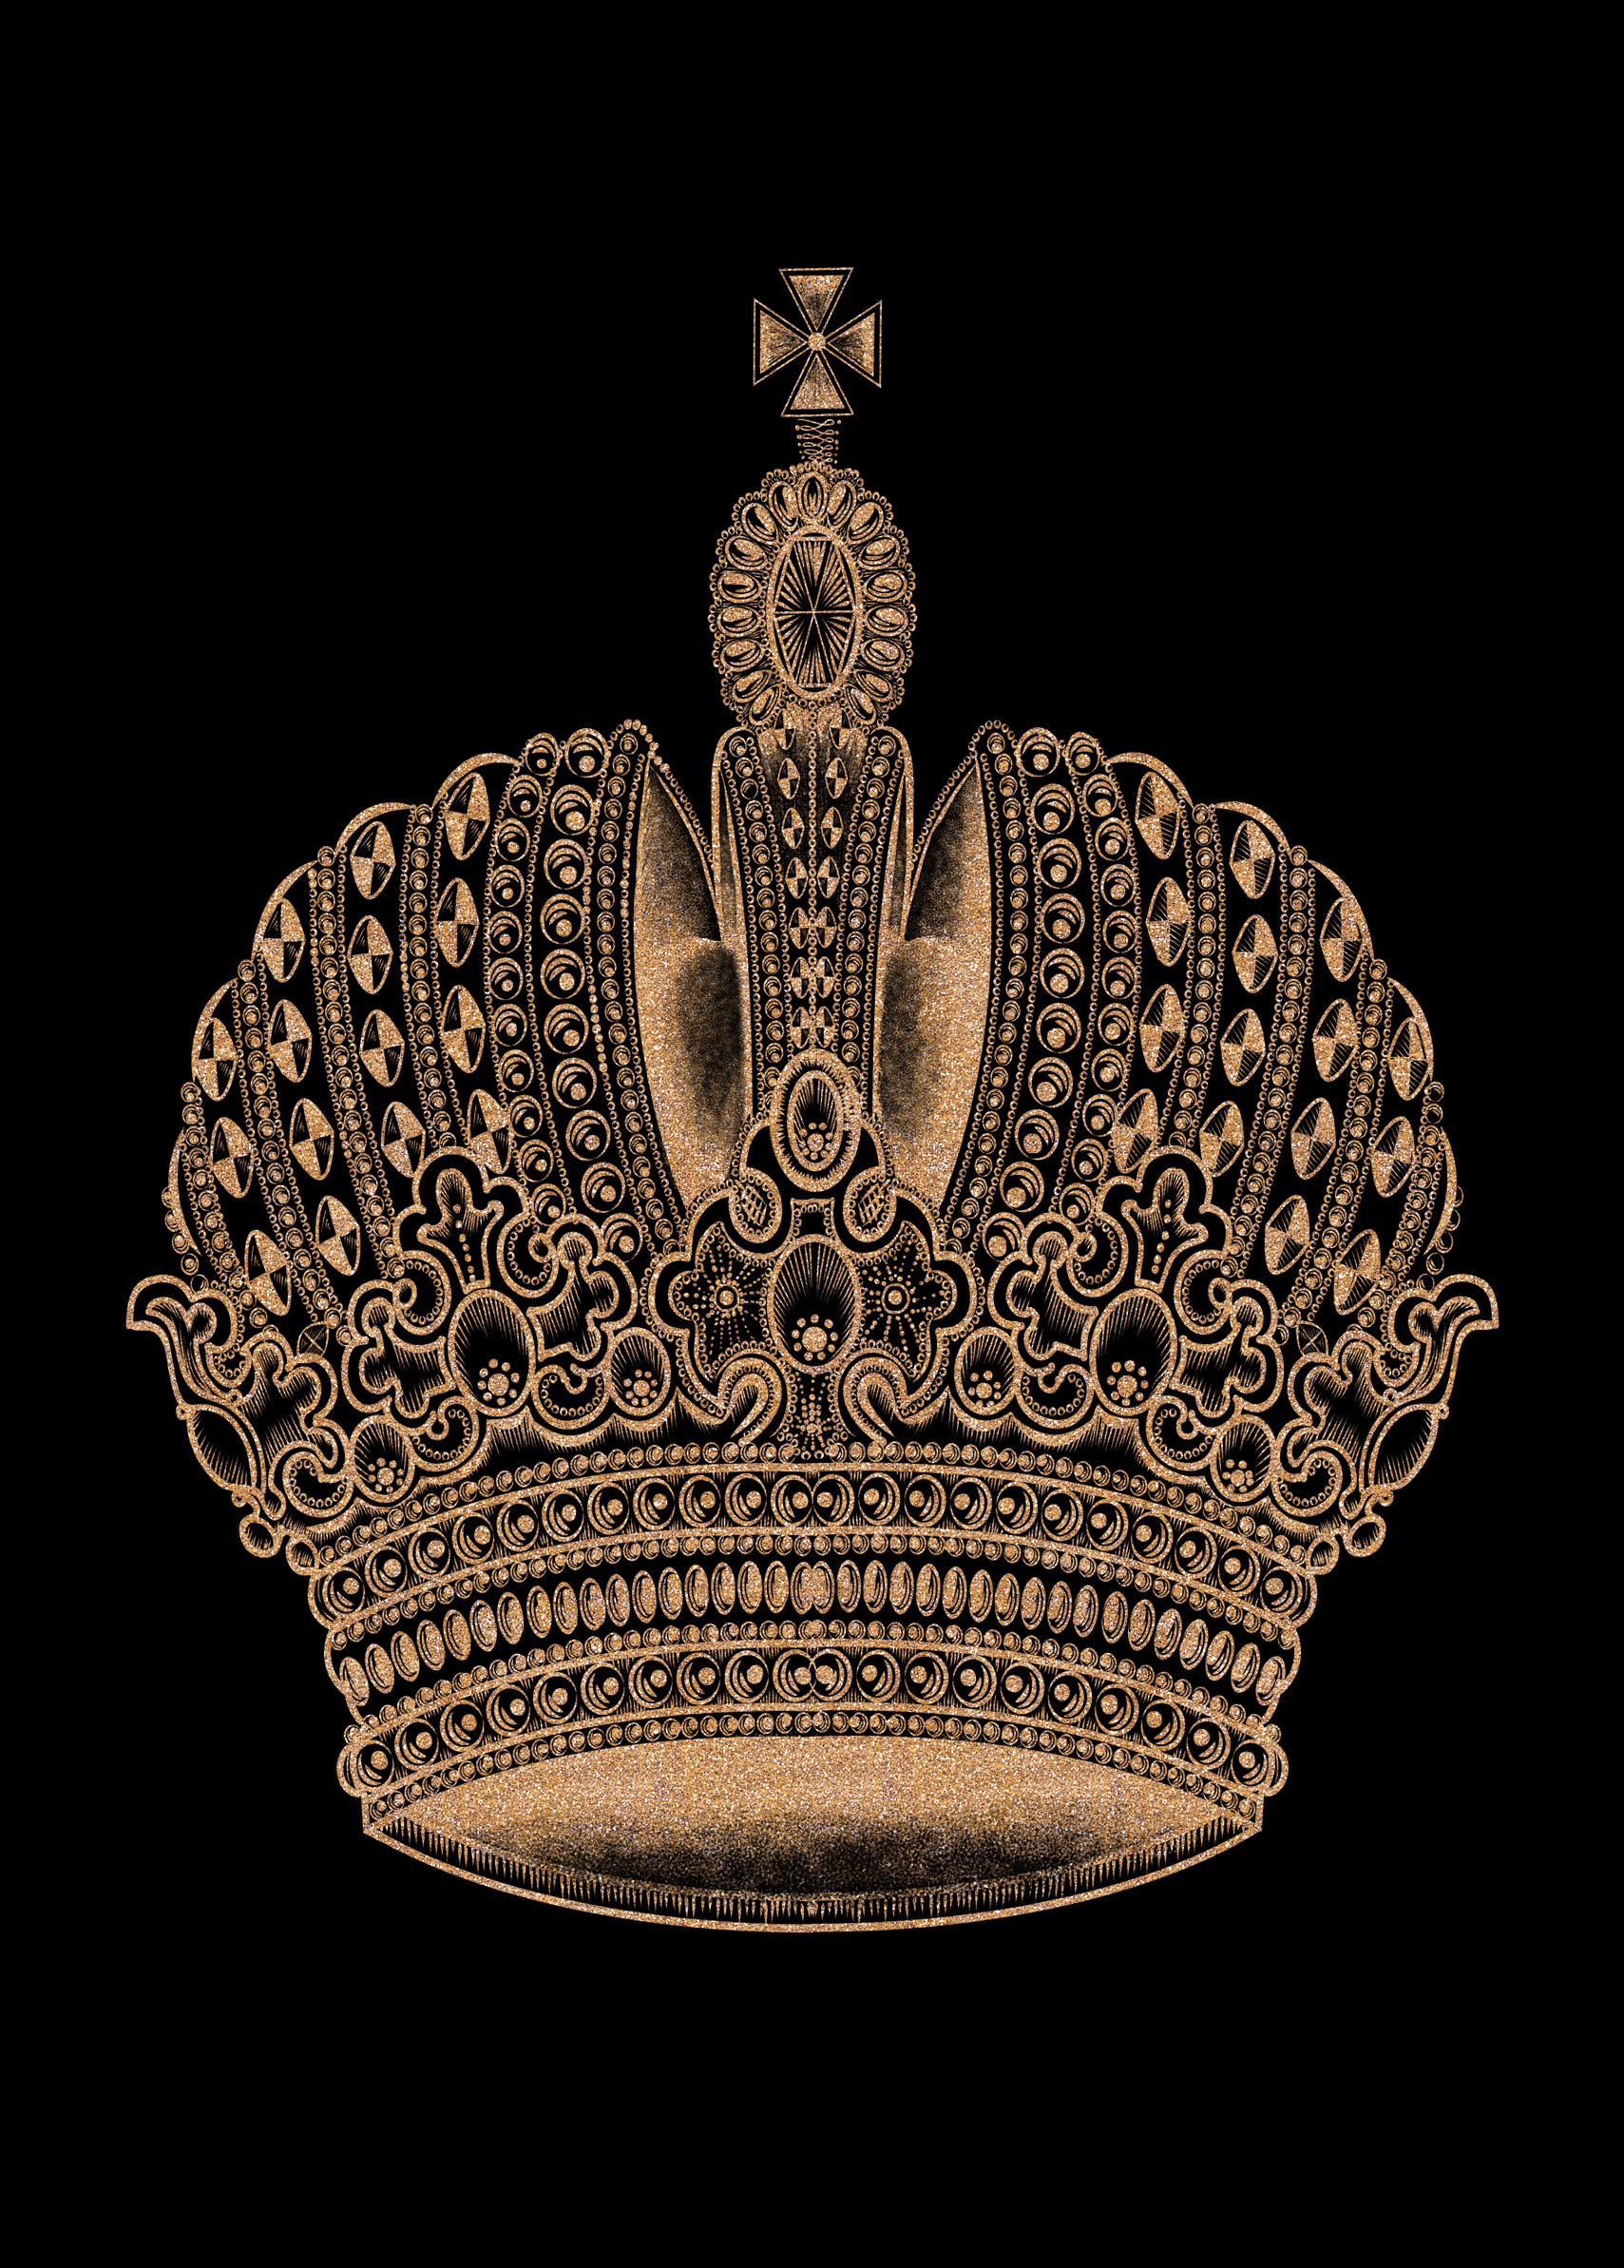 Grand Crown II